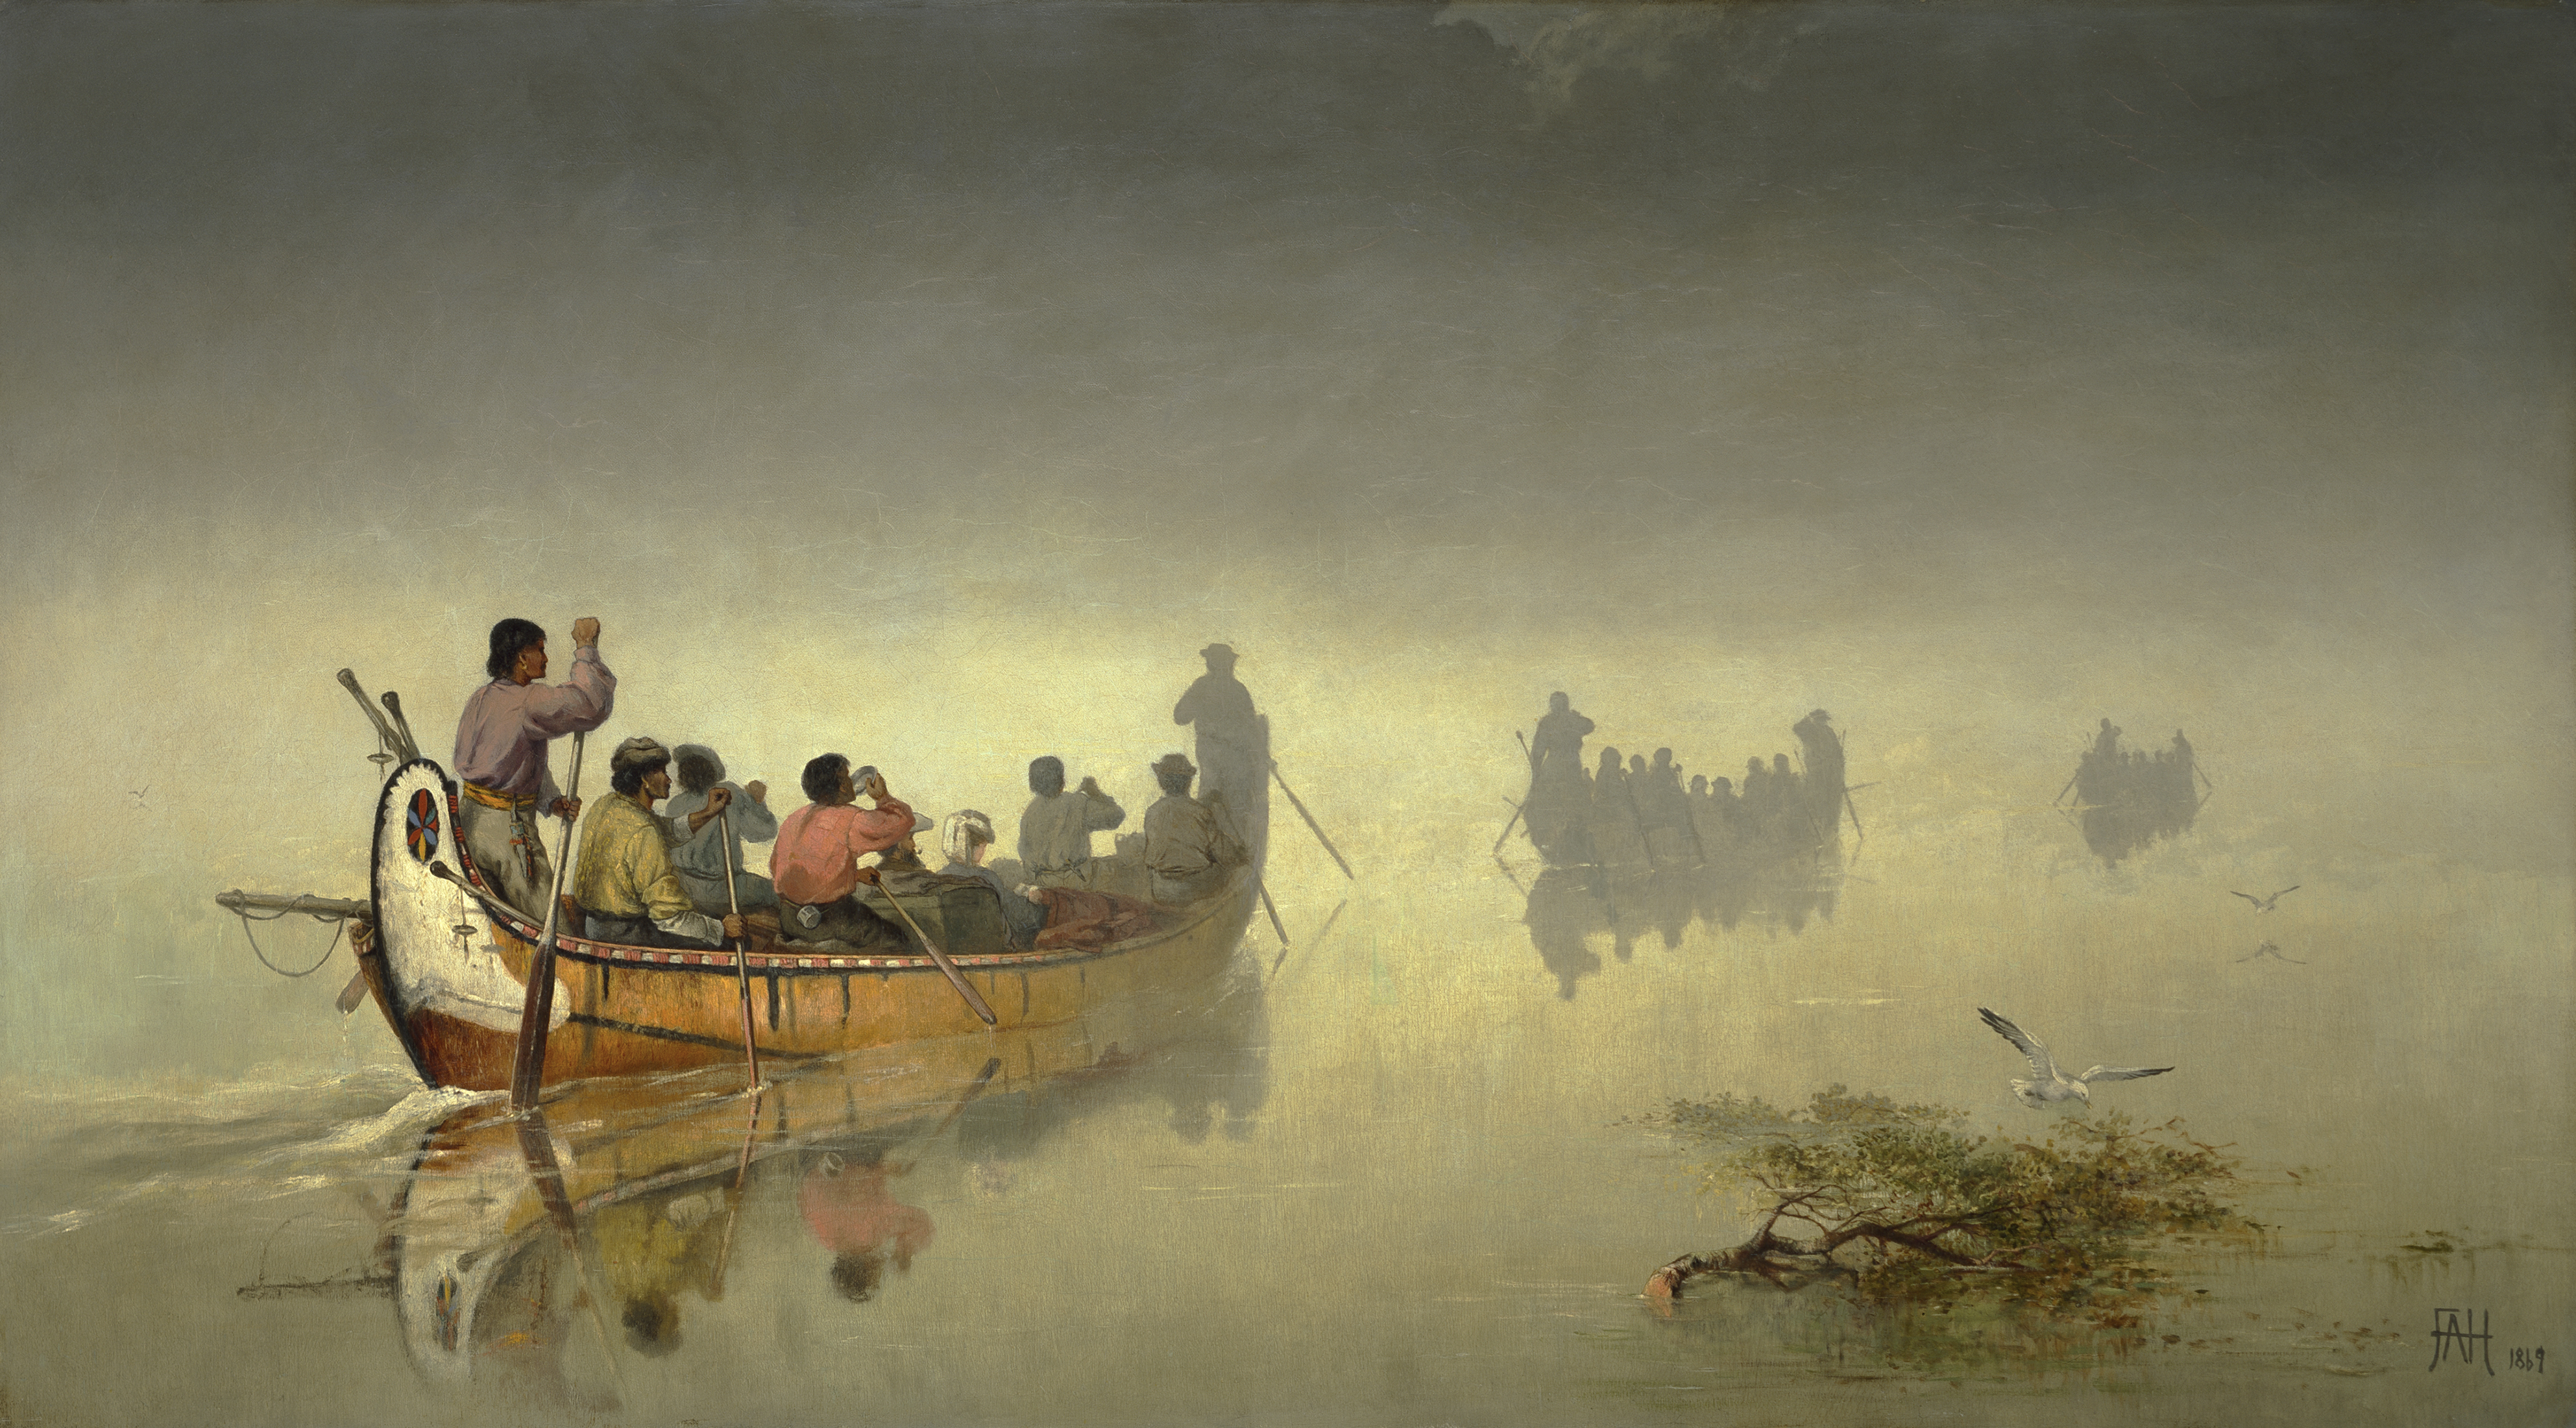 This work shows three canoes gliding across a lake toward the horizon in a diagonal that stretches from the left foreground to the right background. Shrouded in a haze of mist, the farthest two canoes cast indistinct shadows.